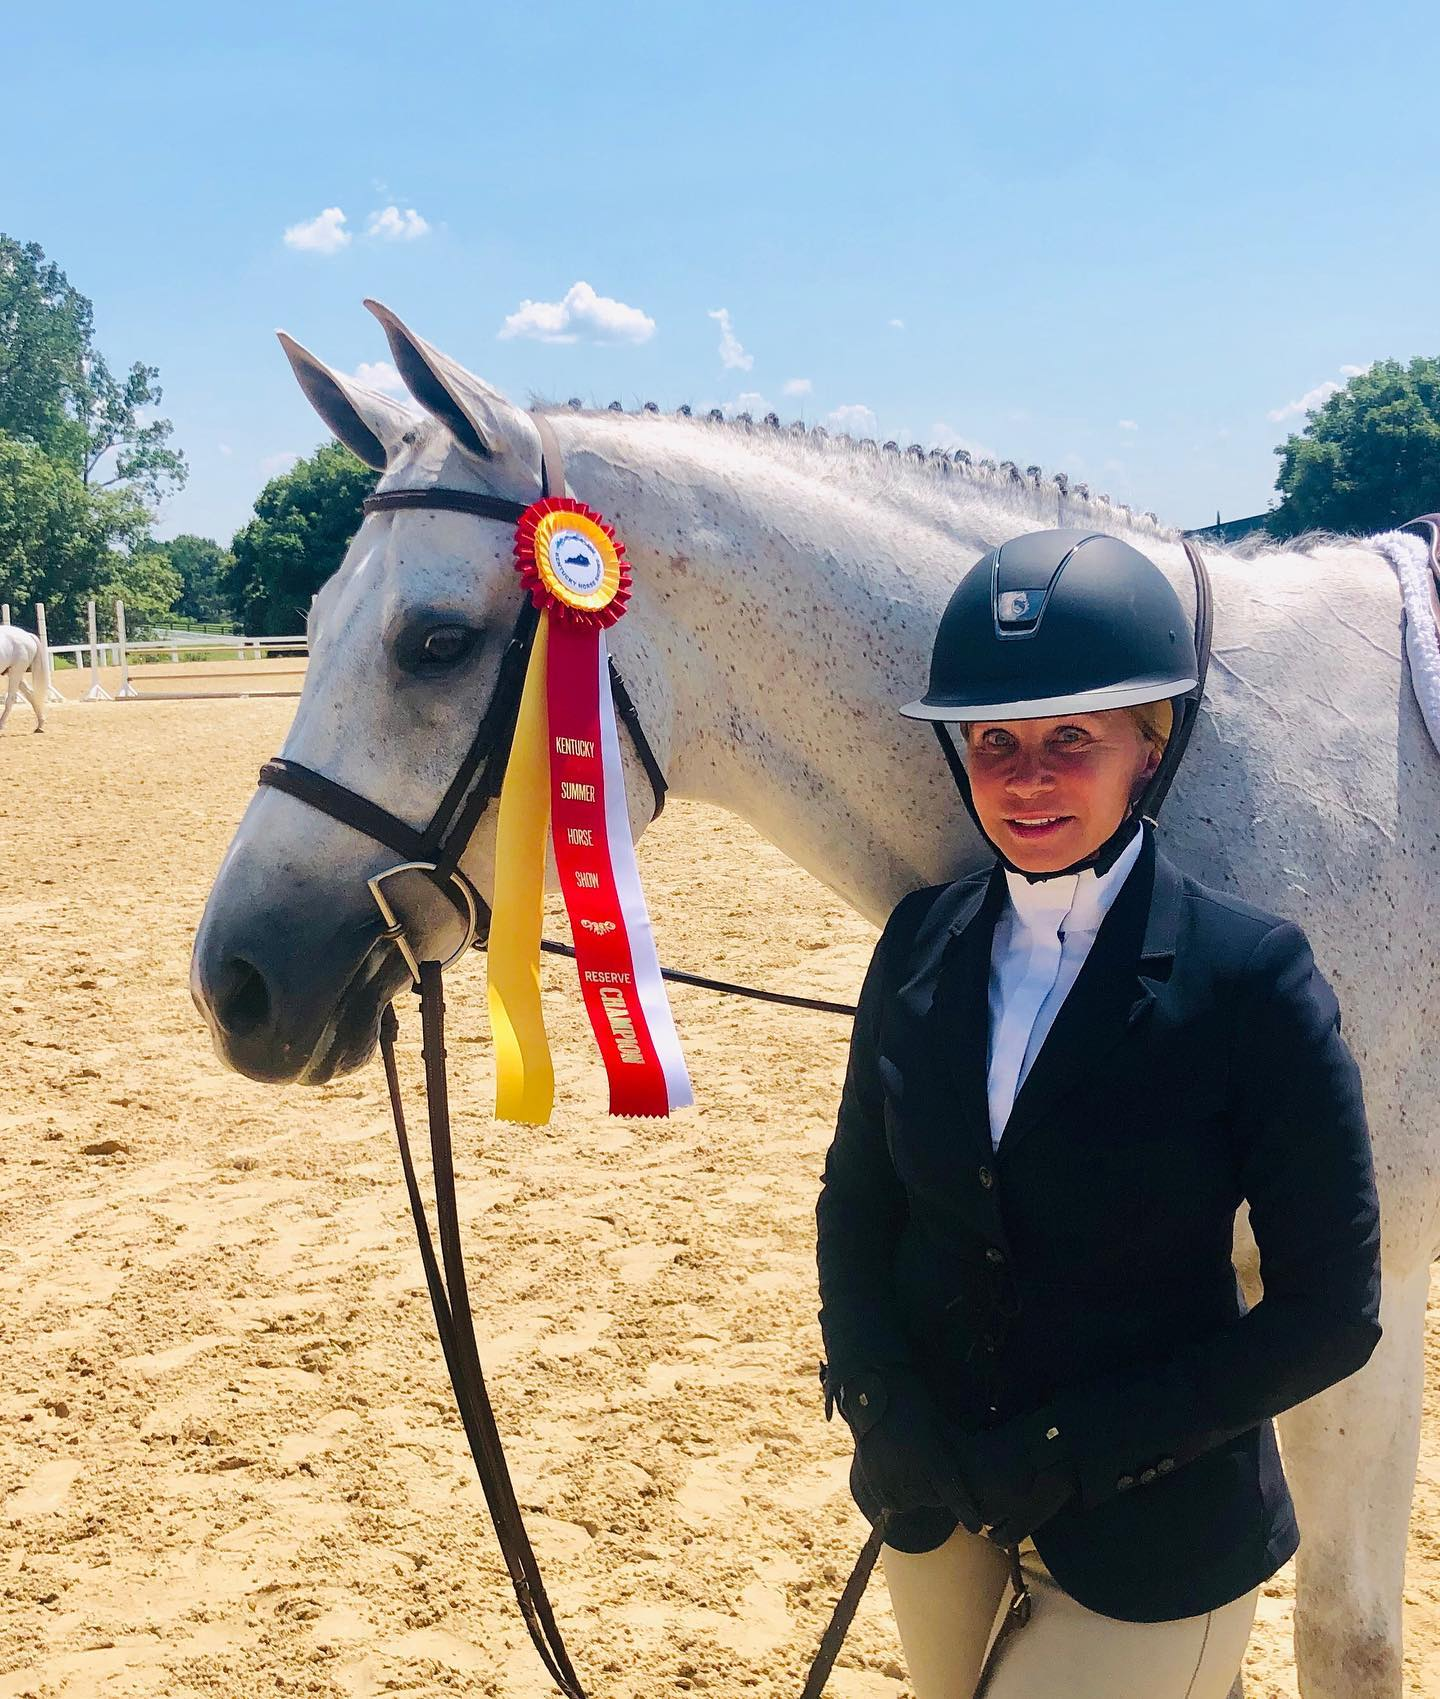 Big shoutout to Cindy Chaconas and Rockaway scoring an 87 and finishing Reserve in the Adult Hunters! So proud of your hard work and determination!